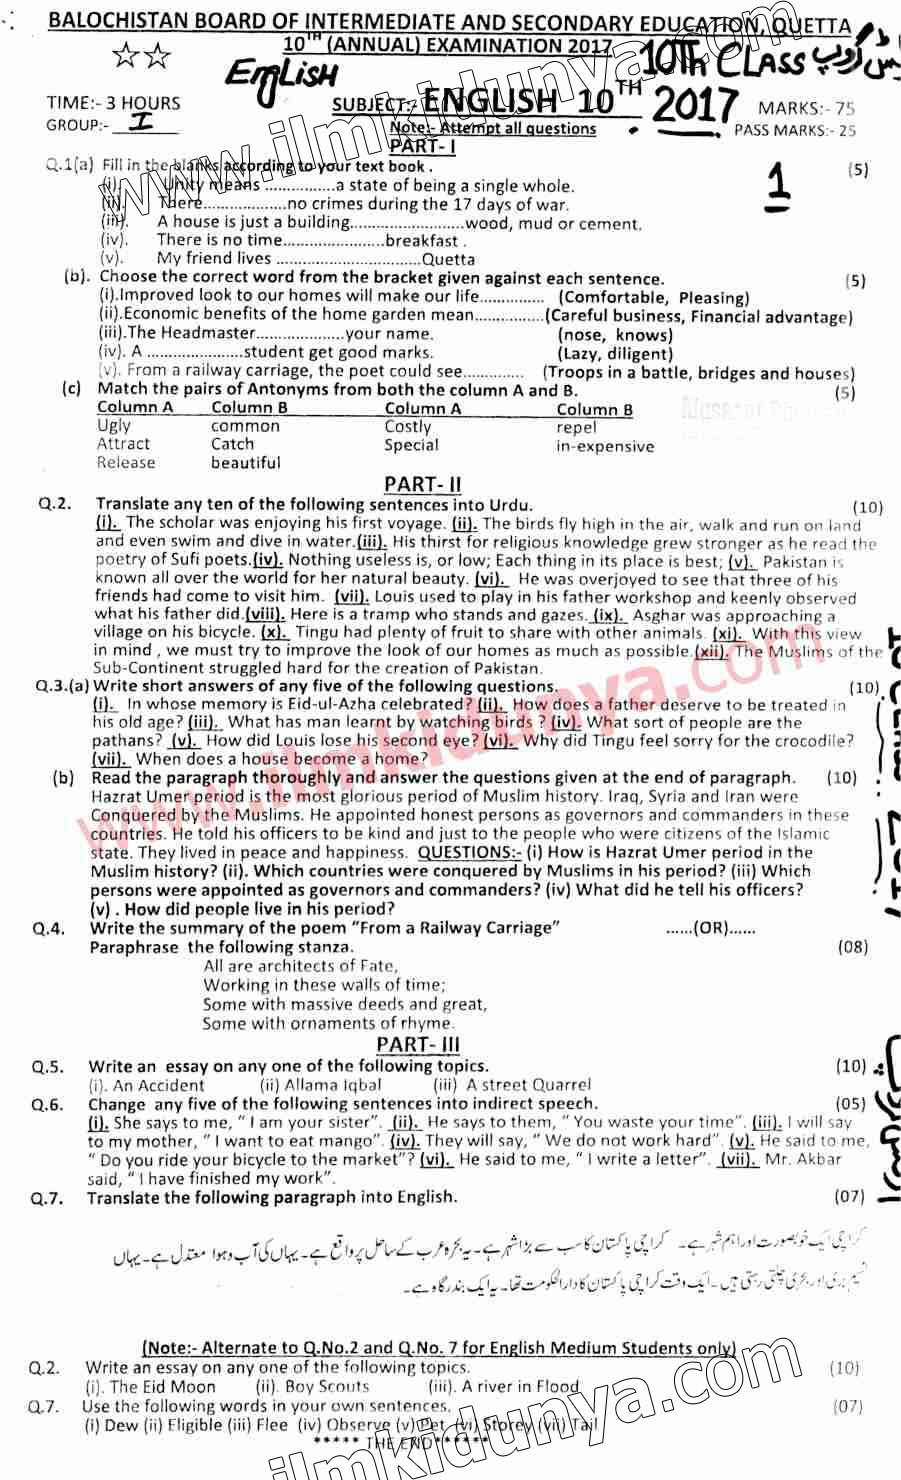 Past Papers 2017 Quetta Board 10th Class Englishq